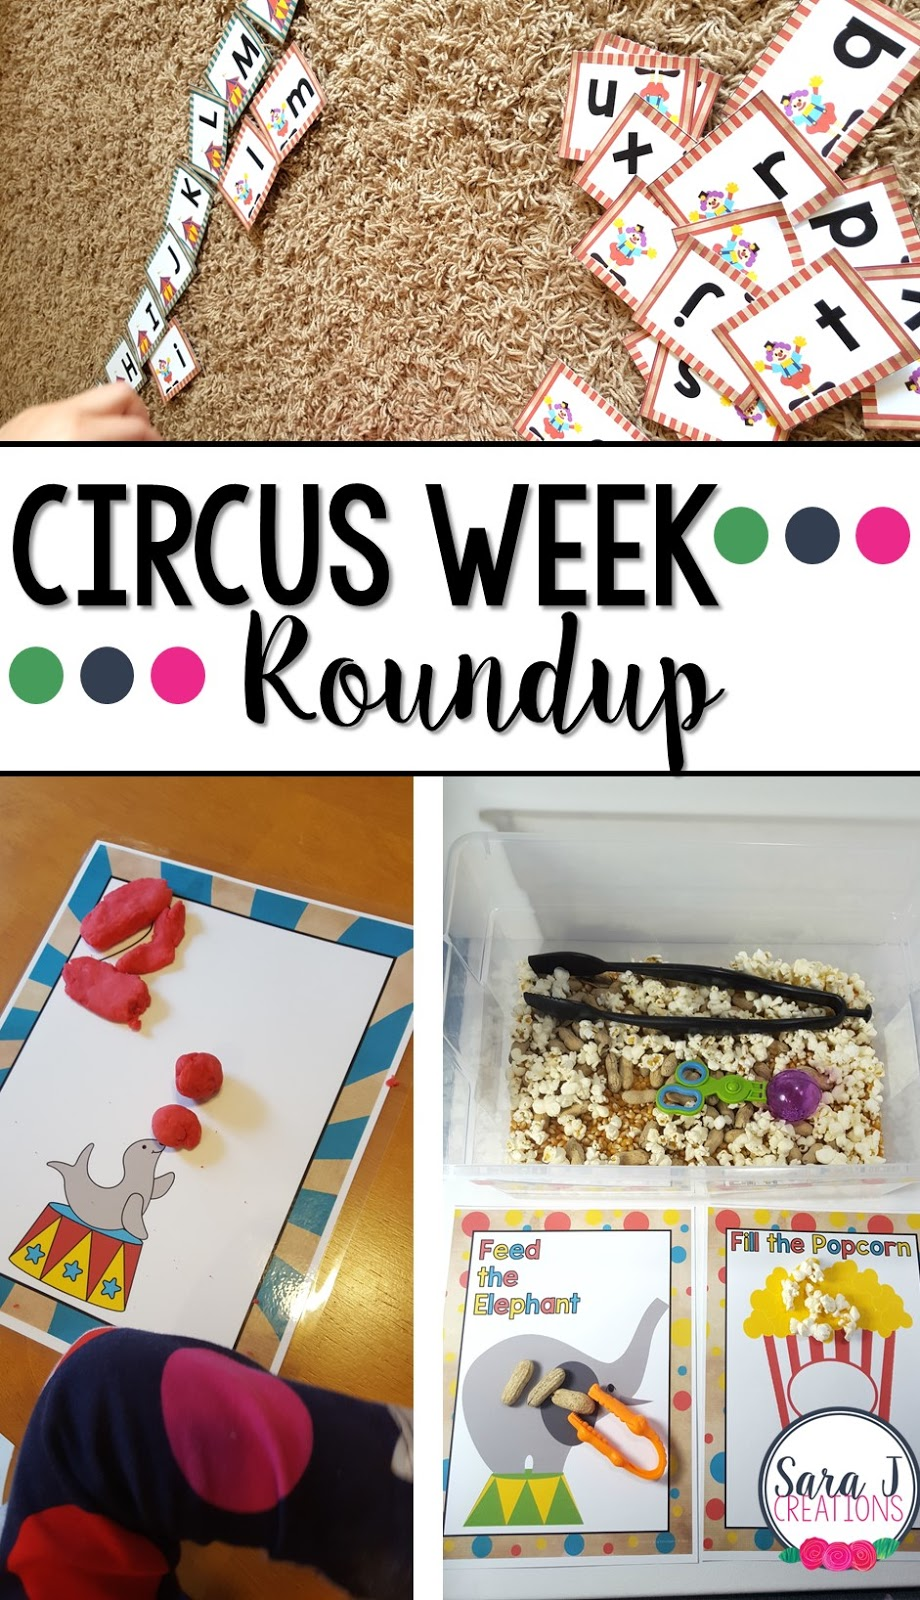 Books, fine motor, gross motor and alphabet practice ideas with a circus theme. Perfect for preschool!